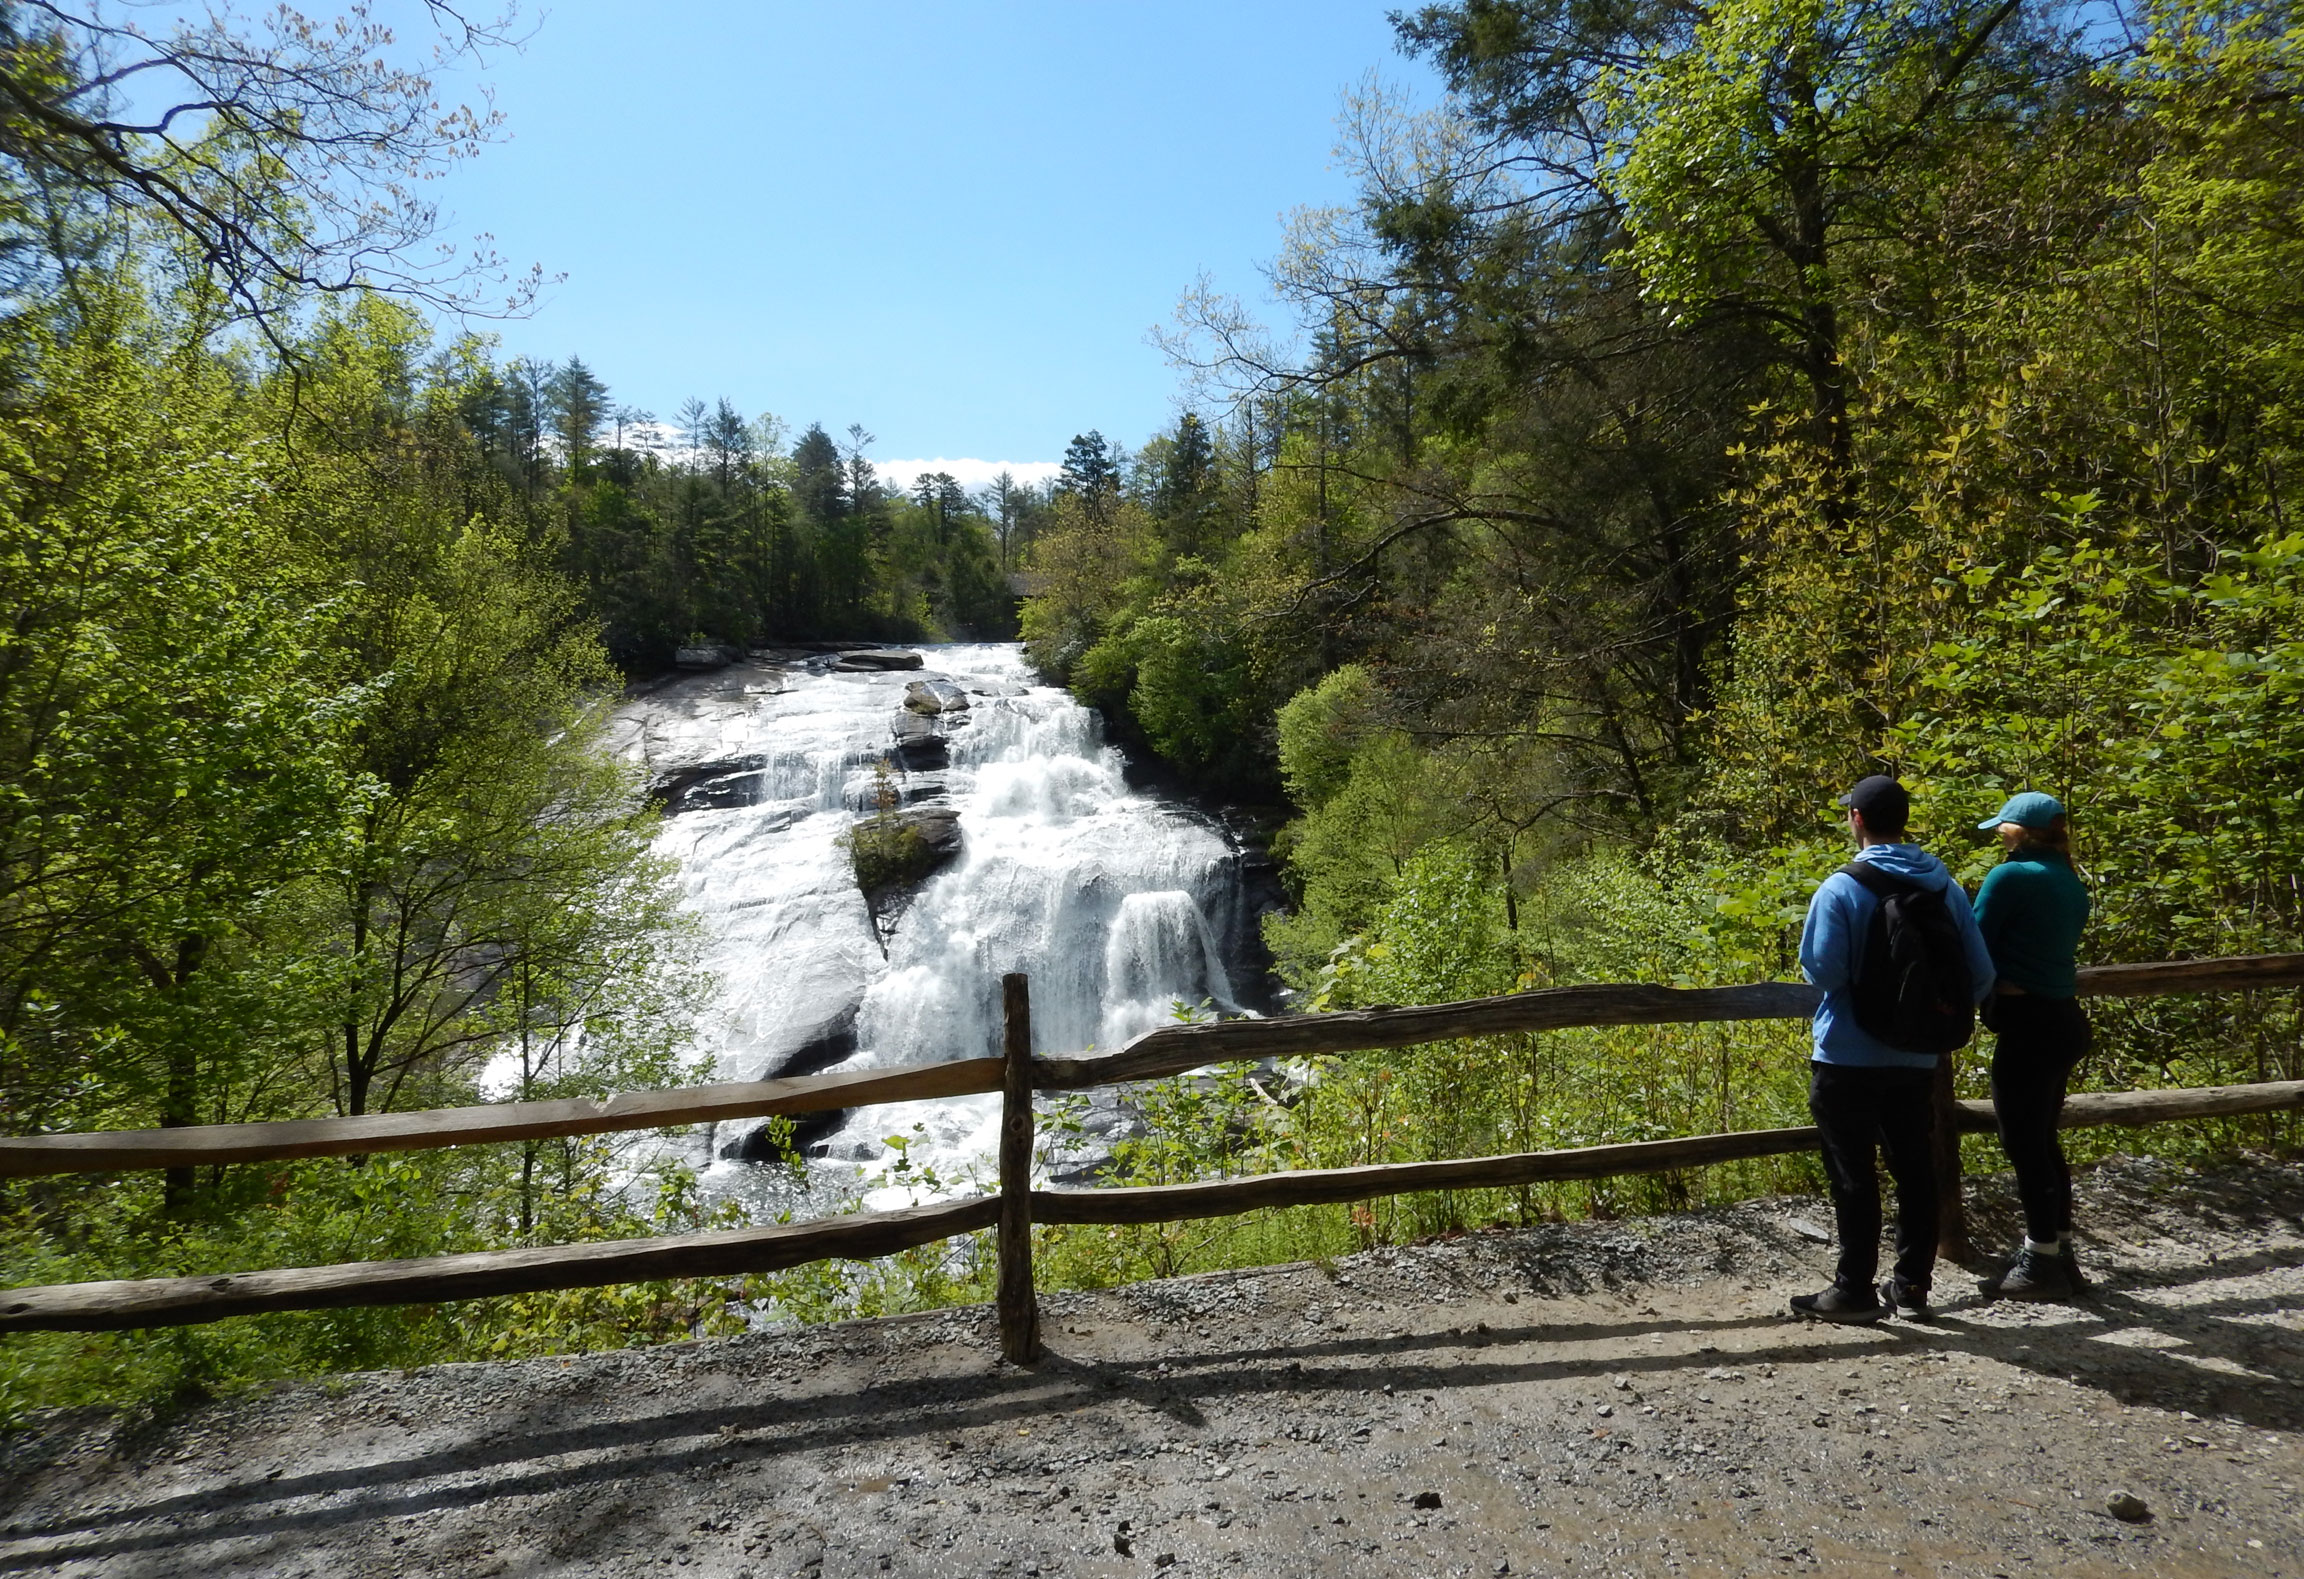 Hiking – Some Thoughts Before You Go